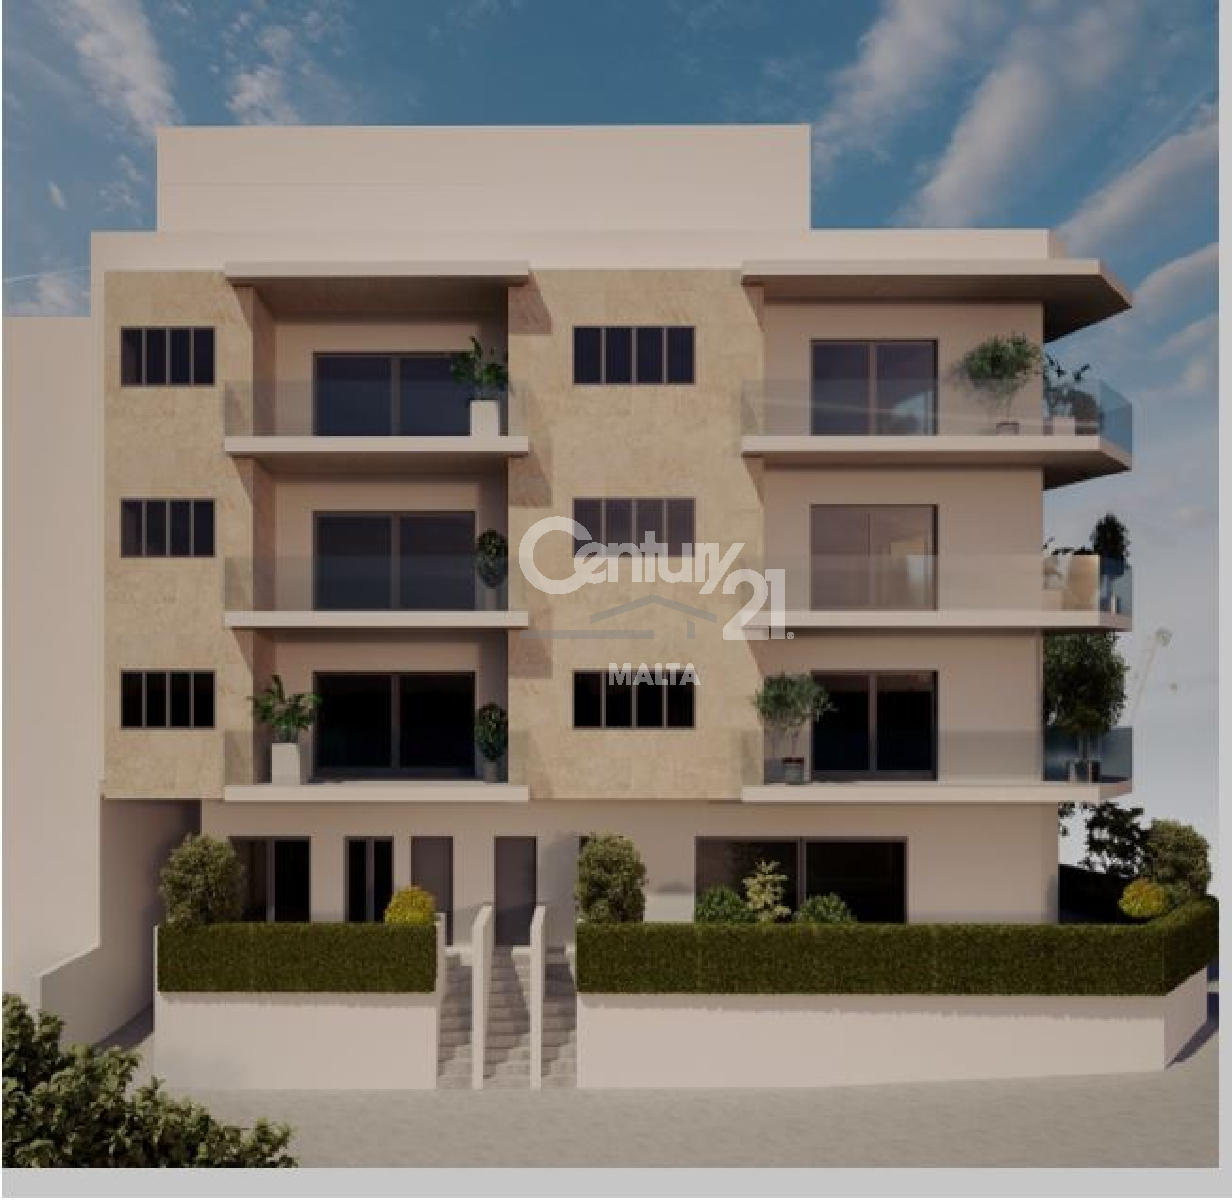 013CF11133–Finished Block of Apartments